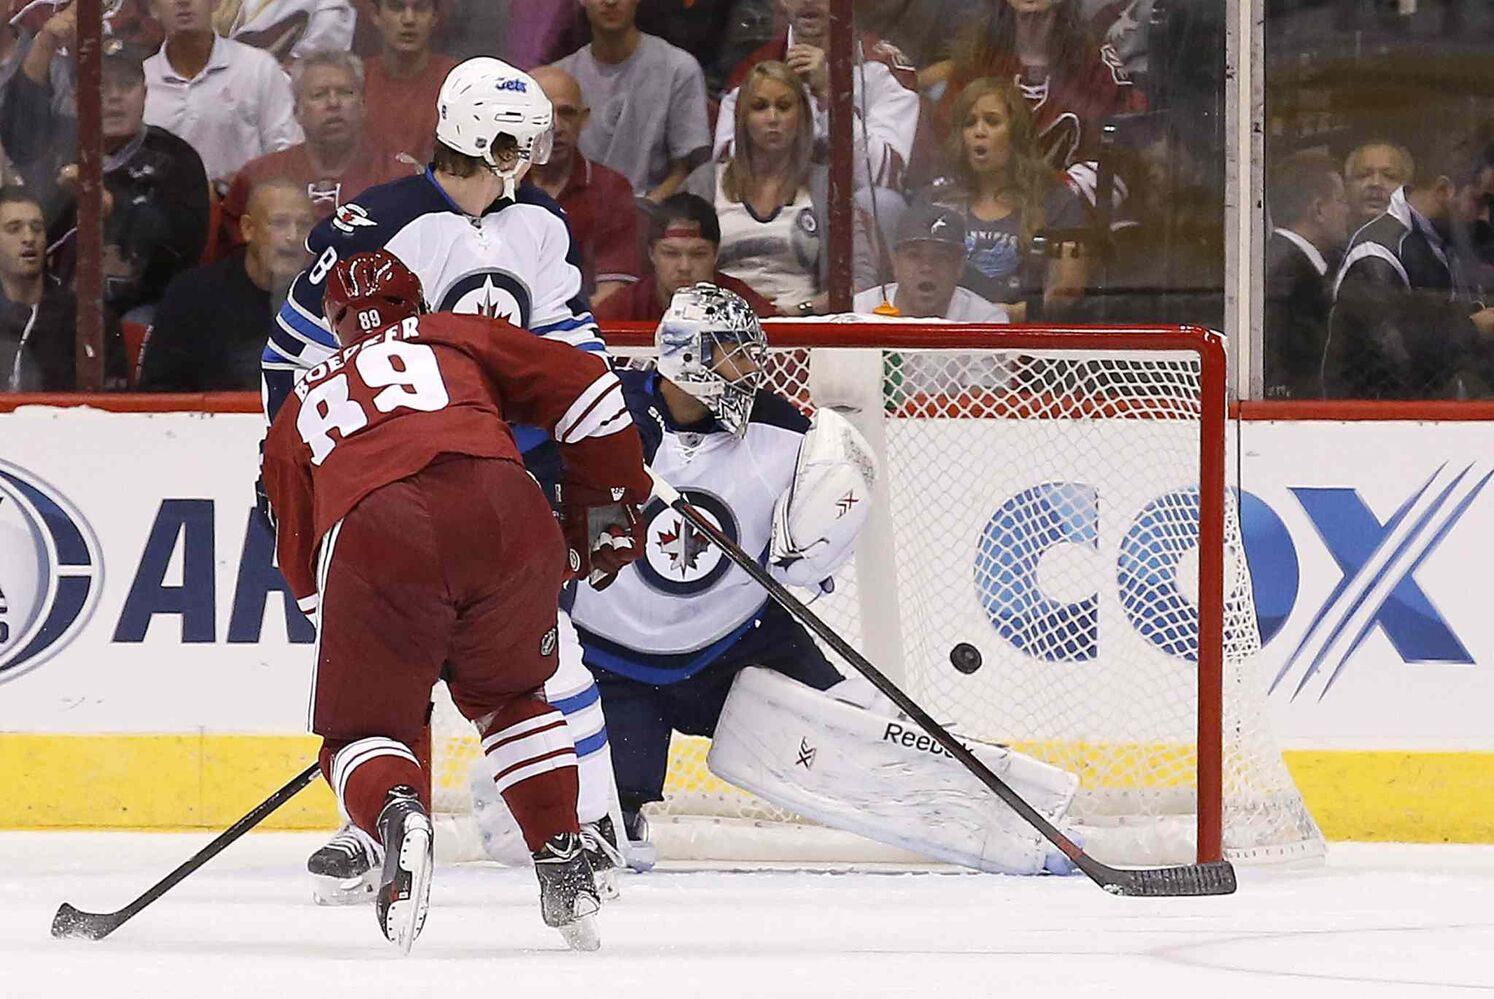 Arizona Coyotes' Mikkel Boedker (89), of Denmark, scores a goal against Winnipeg Jets' Ondrej Pavelec, right, of the Czech Republic, as Jets' Jacob Trouba (8) looks on during the first period of an NHL hockey game Thursday, Oct. 9, 2014, in Glendale, Ariz. (Ross D. Franklin / The Associated Press)